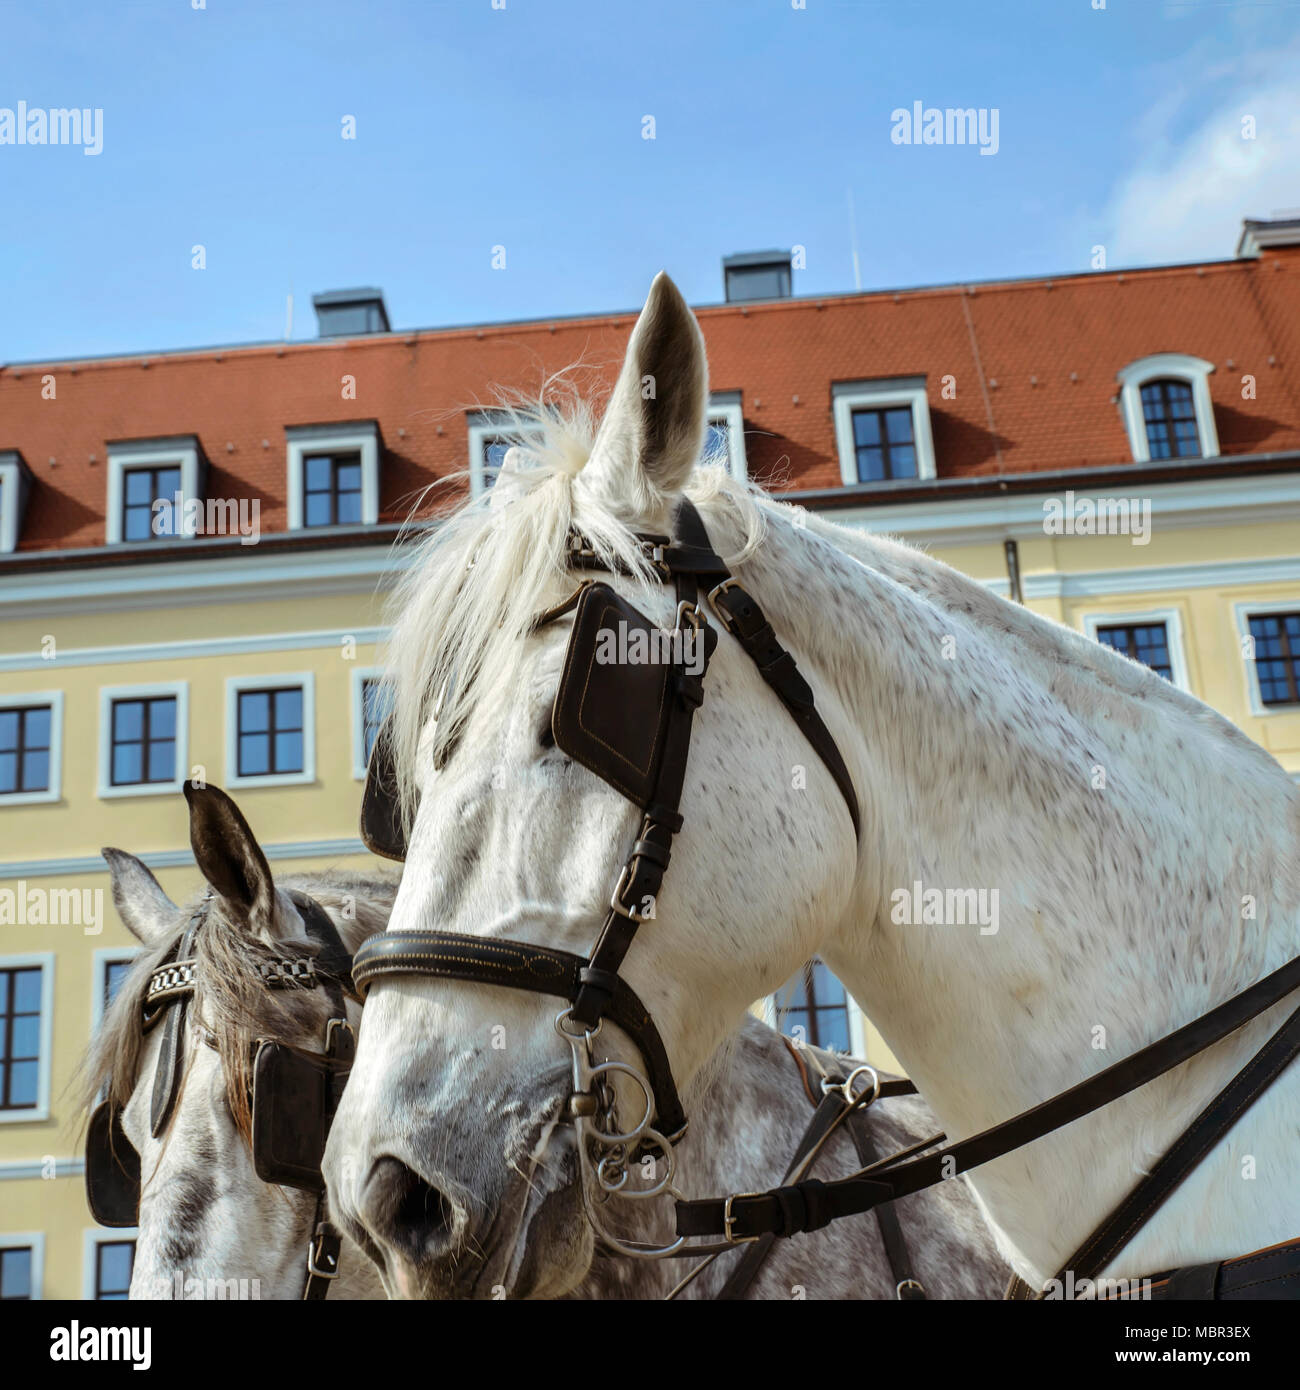 White harnessed to a leather harness horse on the street of an old